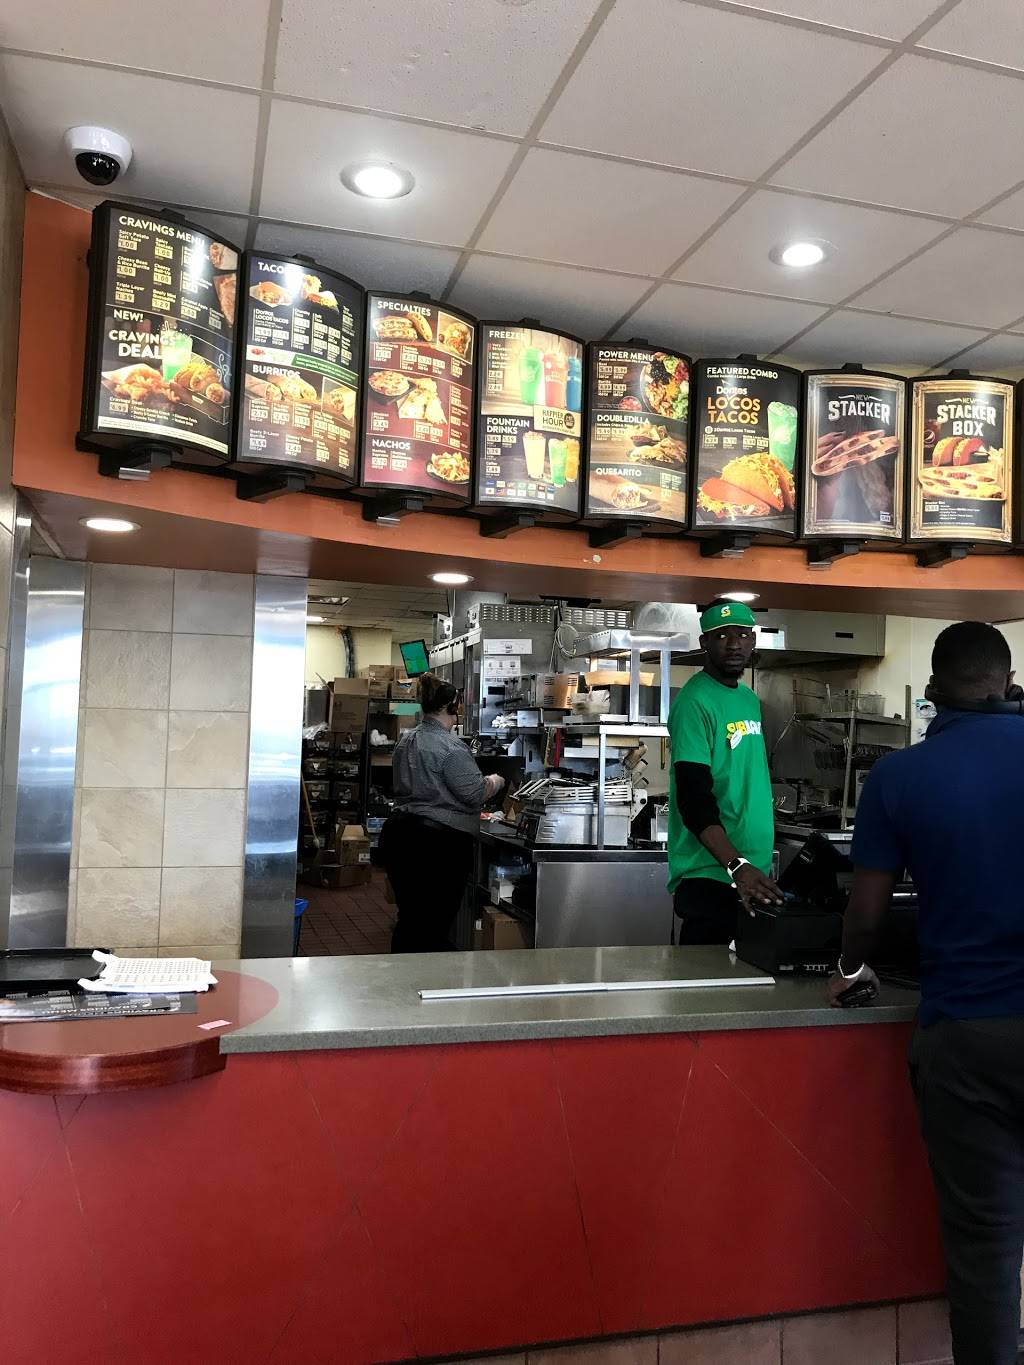 Taco Bell | restaurant | 2015 W Lucas St, Florence, SC 29501, USA | 8436622673 OR +1 843-662-2673